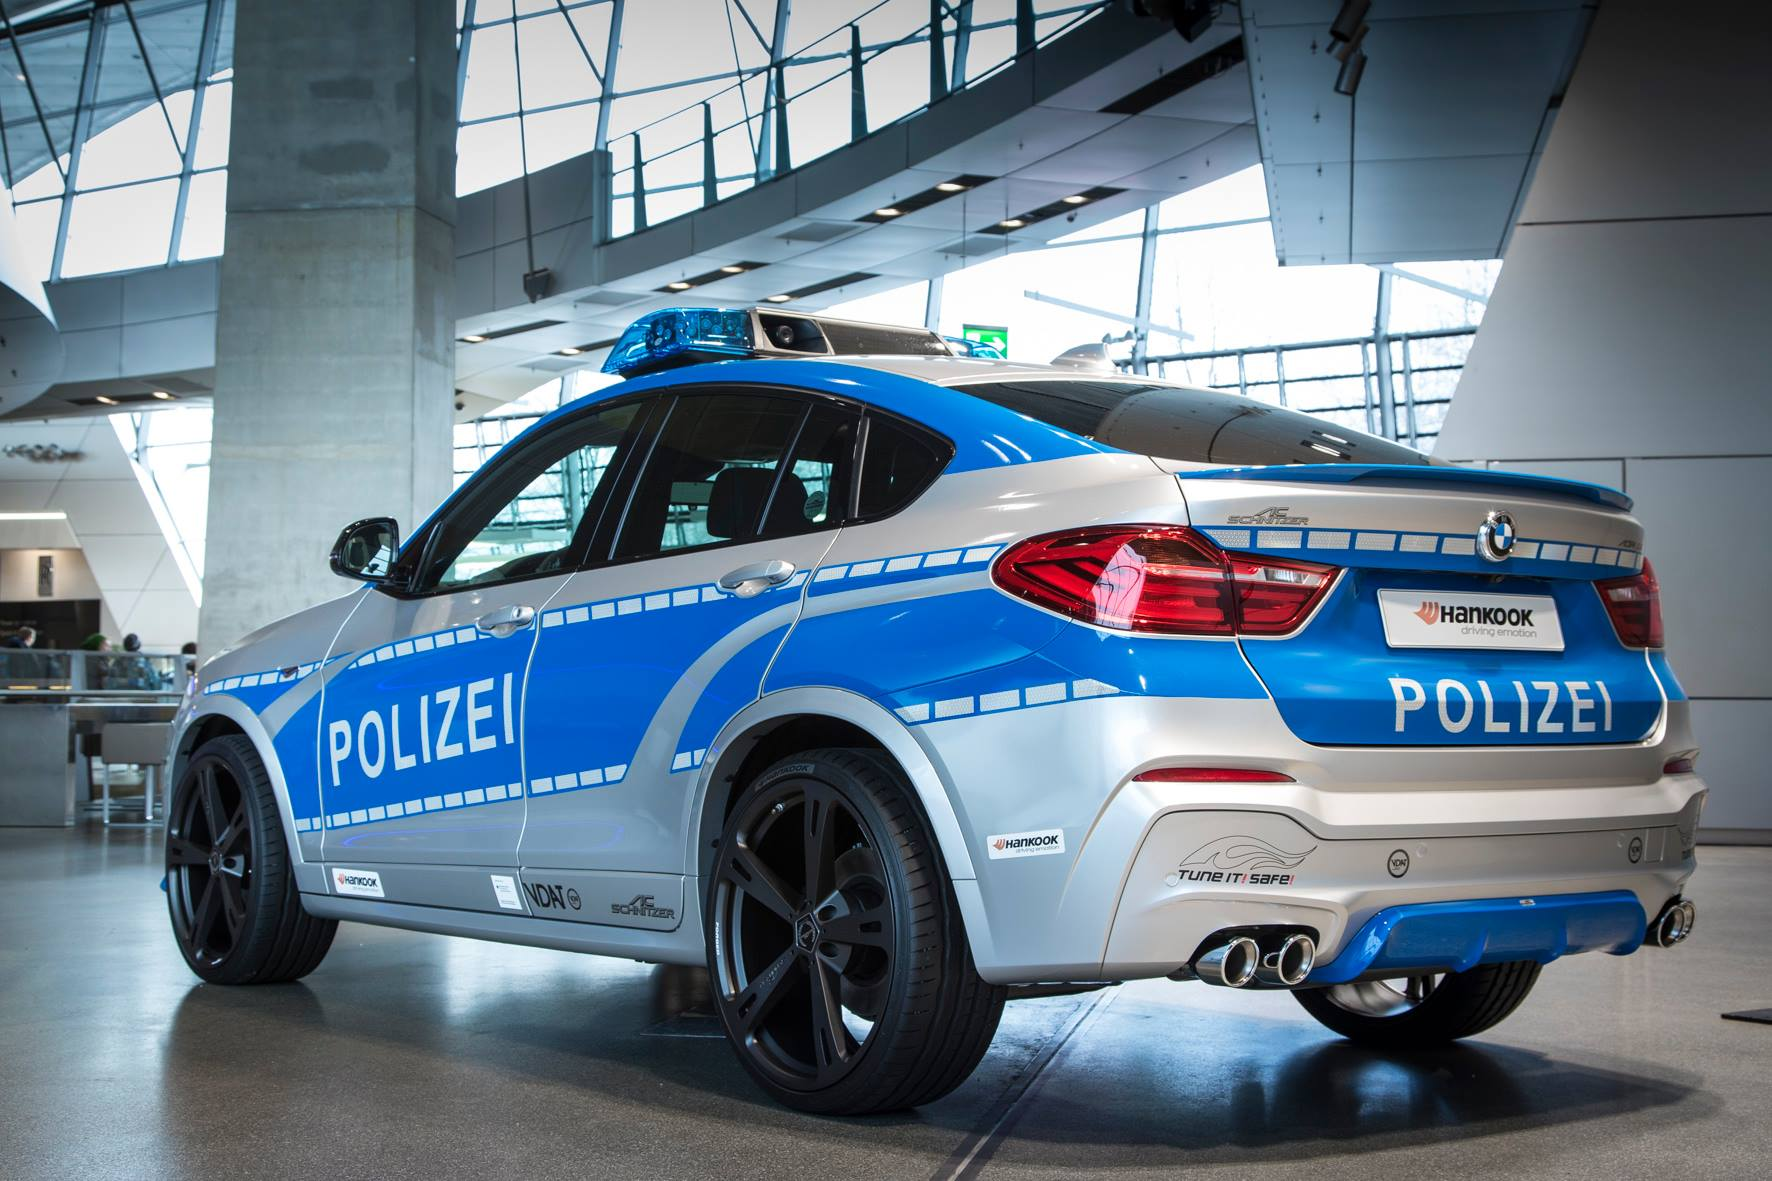 Woop-woop! It's the sound of the police. The #BMW #X4 2.0i xDrive show car by AC Schnitzer. @BMW_Welt http://t.co/ea6tYngCx4